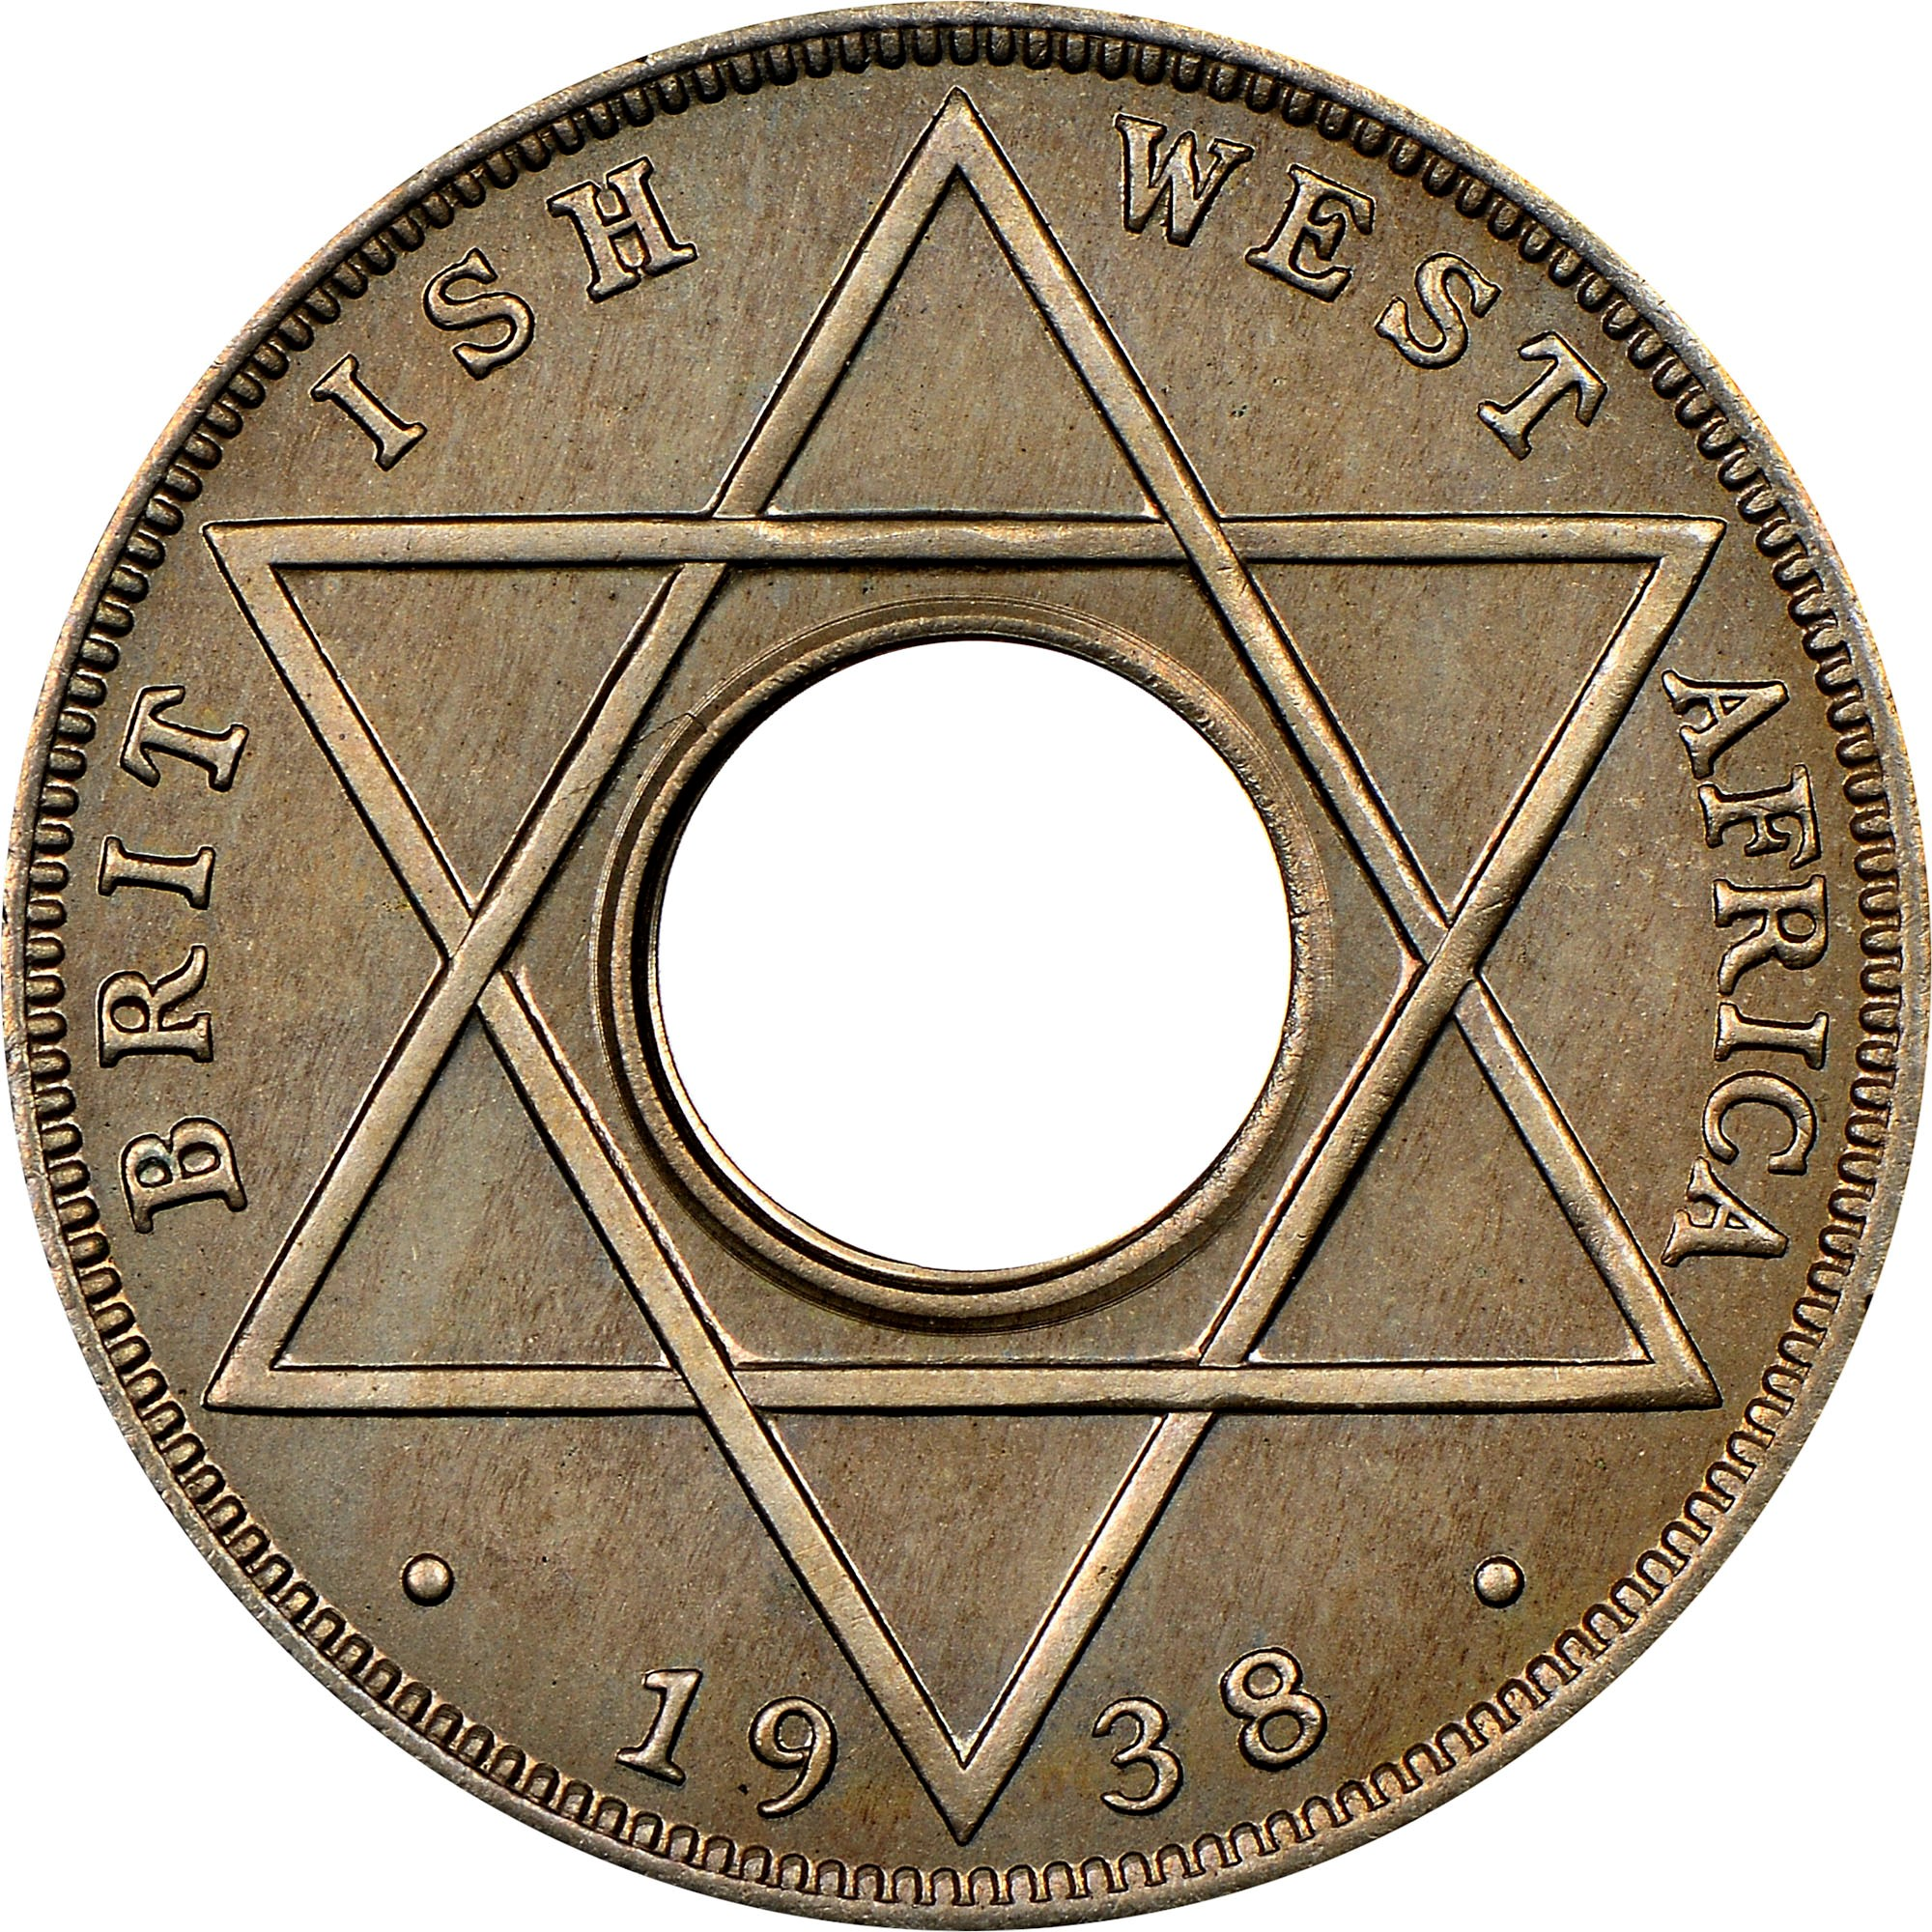 British West Africa 1/10 Penny reverse